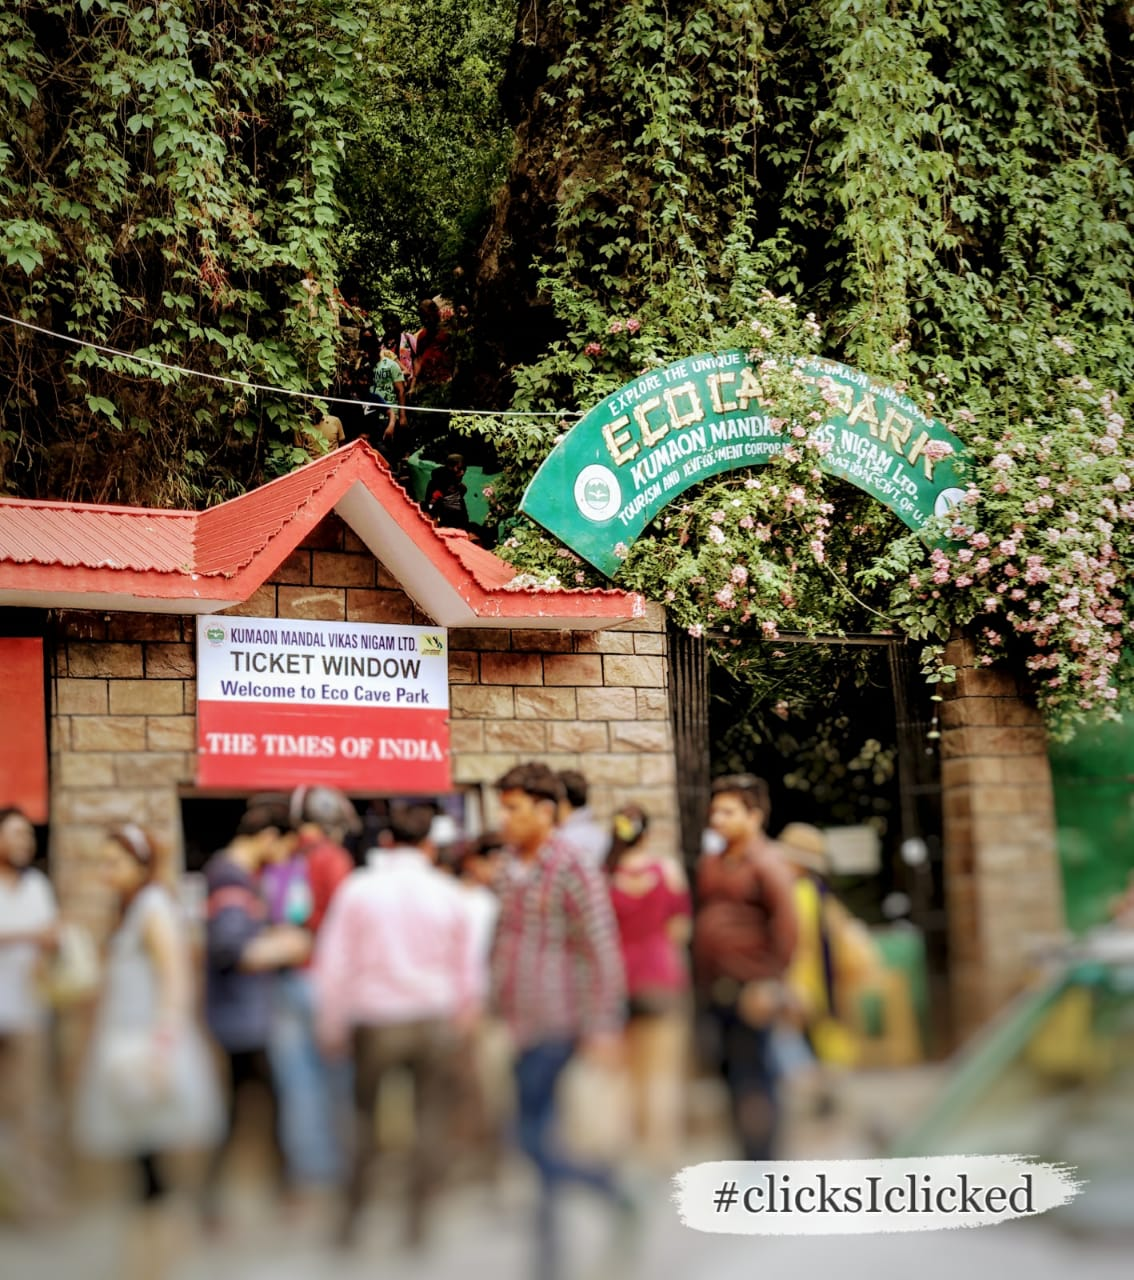 Caves at Nainital, Eco cave park